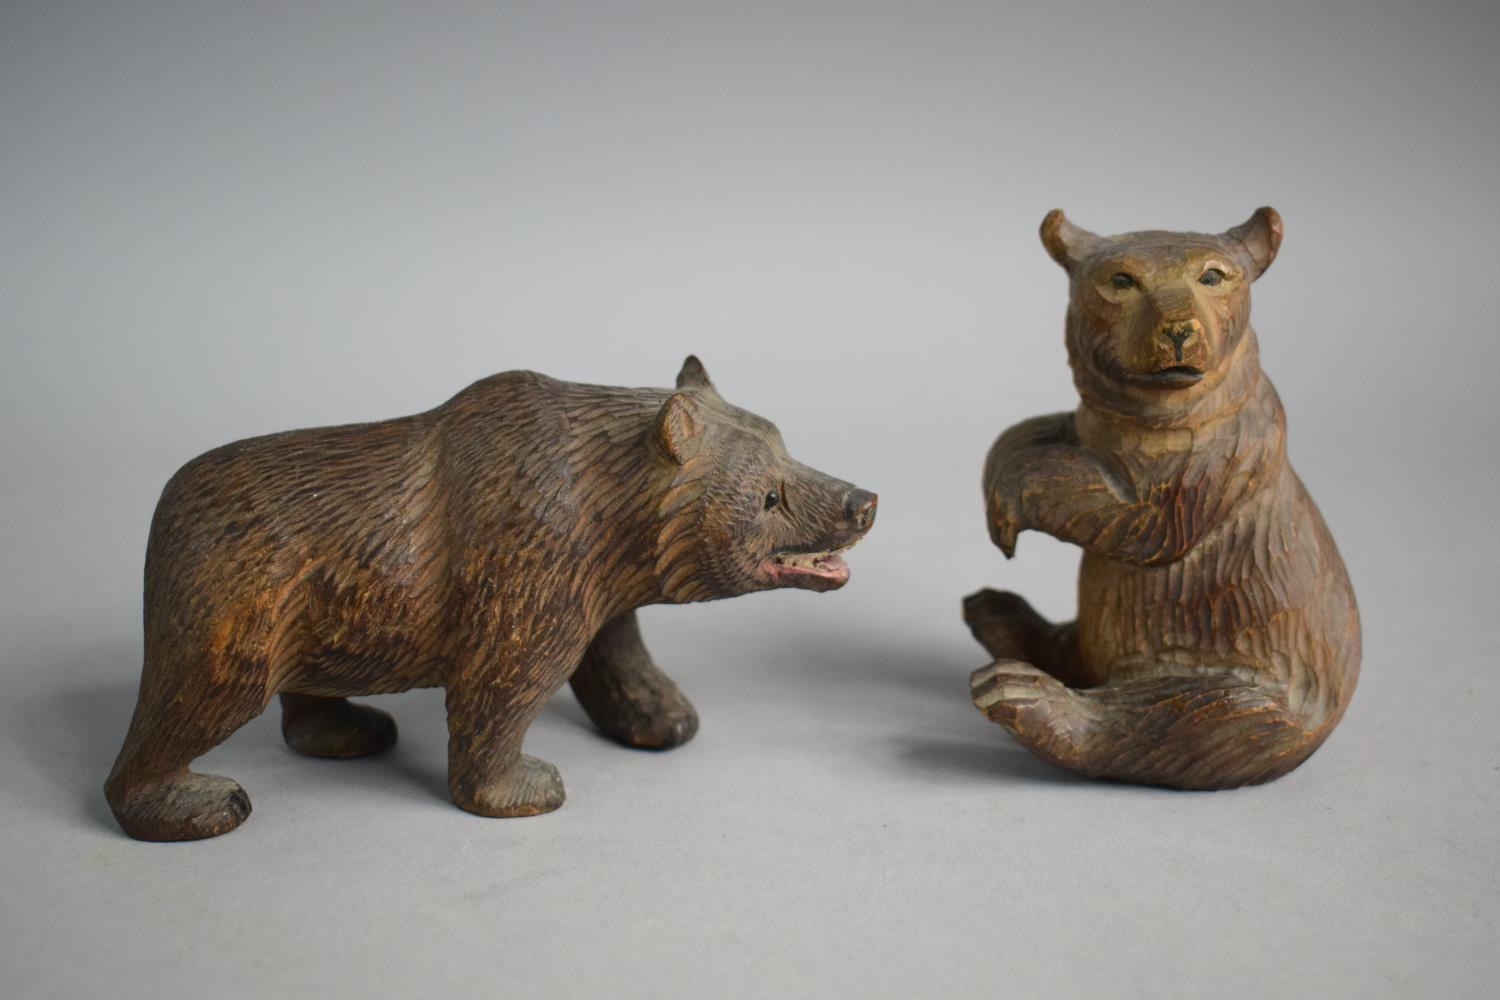 Two Small Carved Black Forest Bears - Image 2 of 4